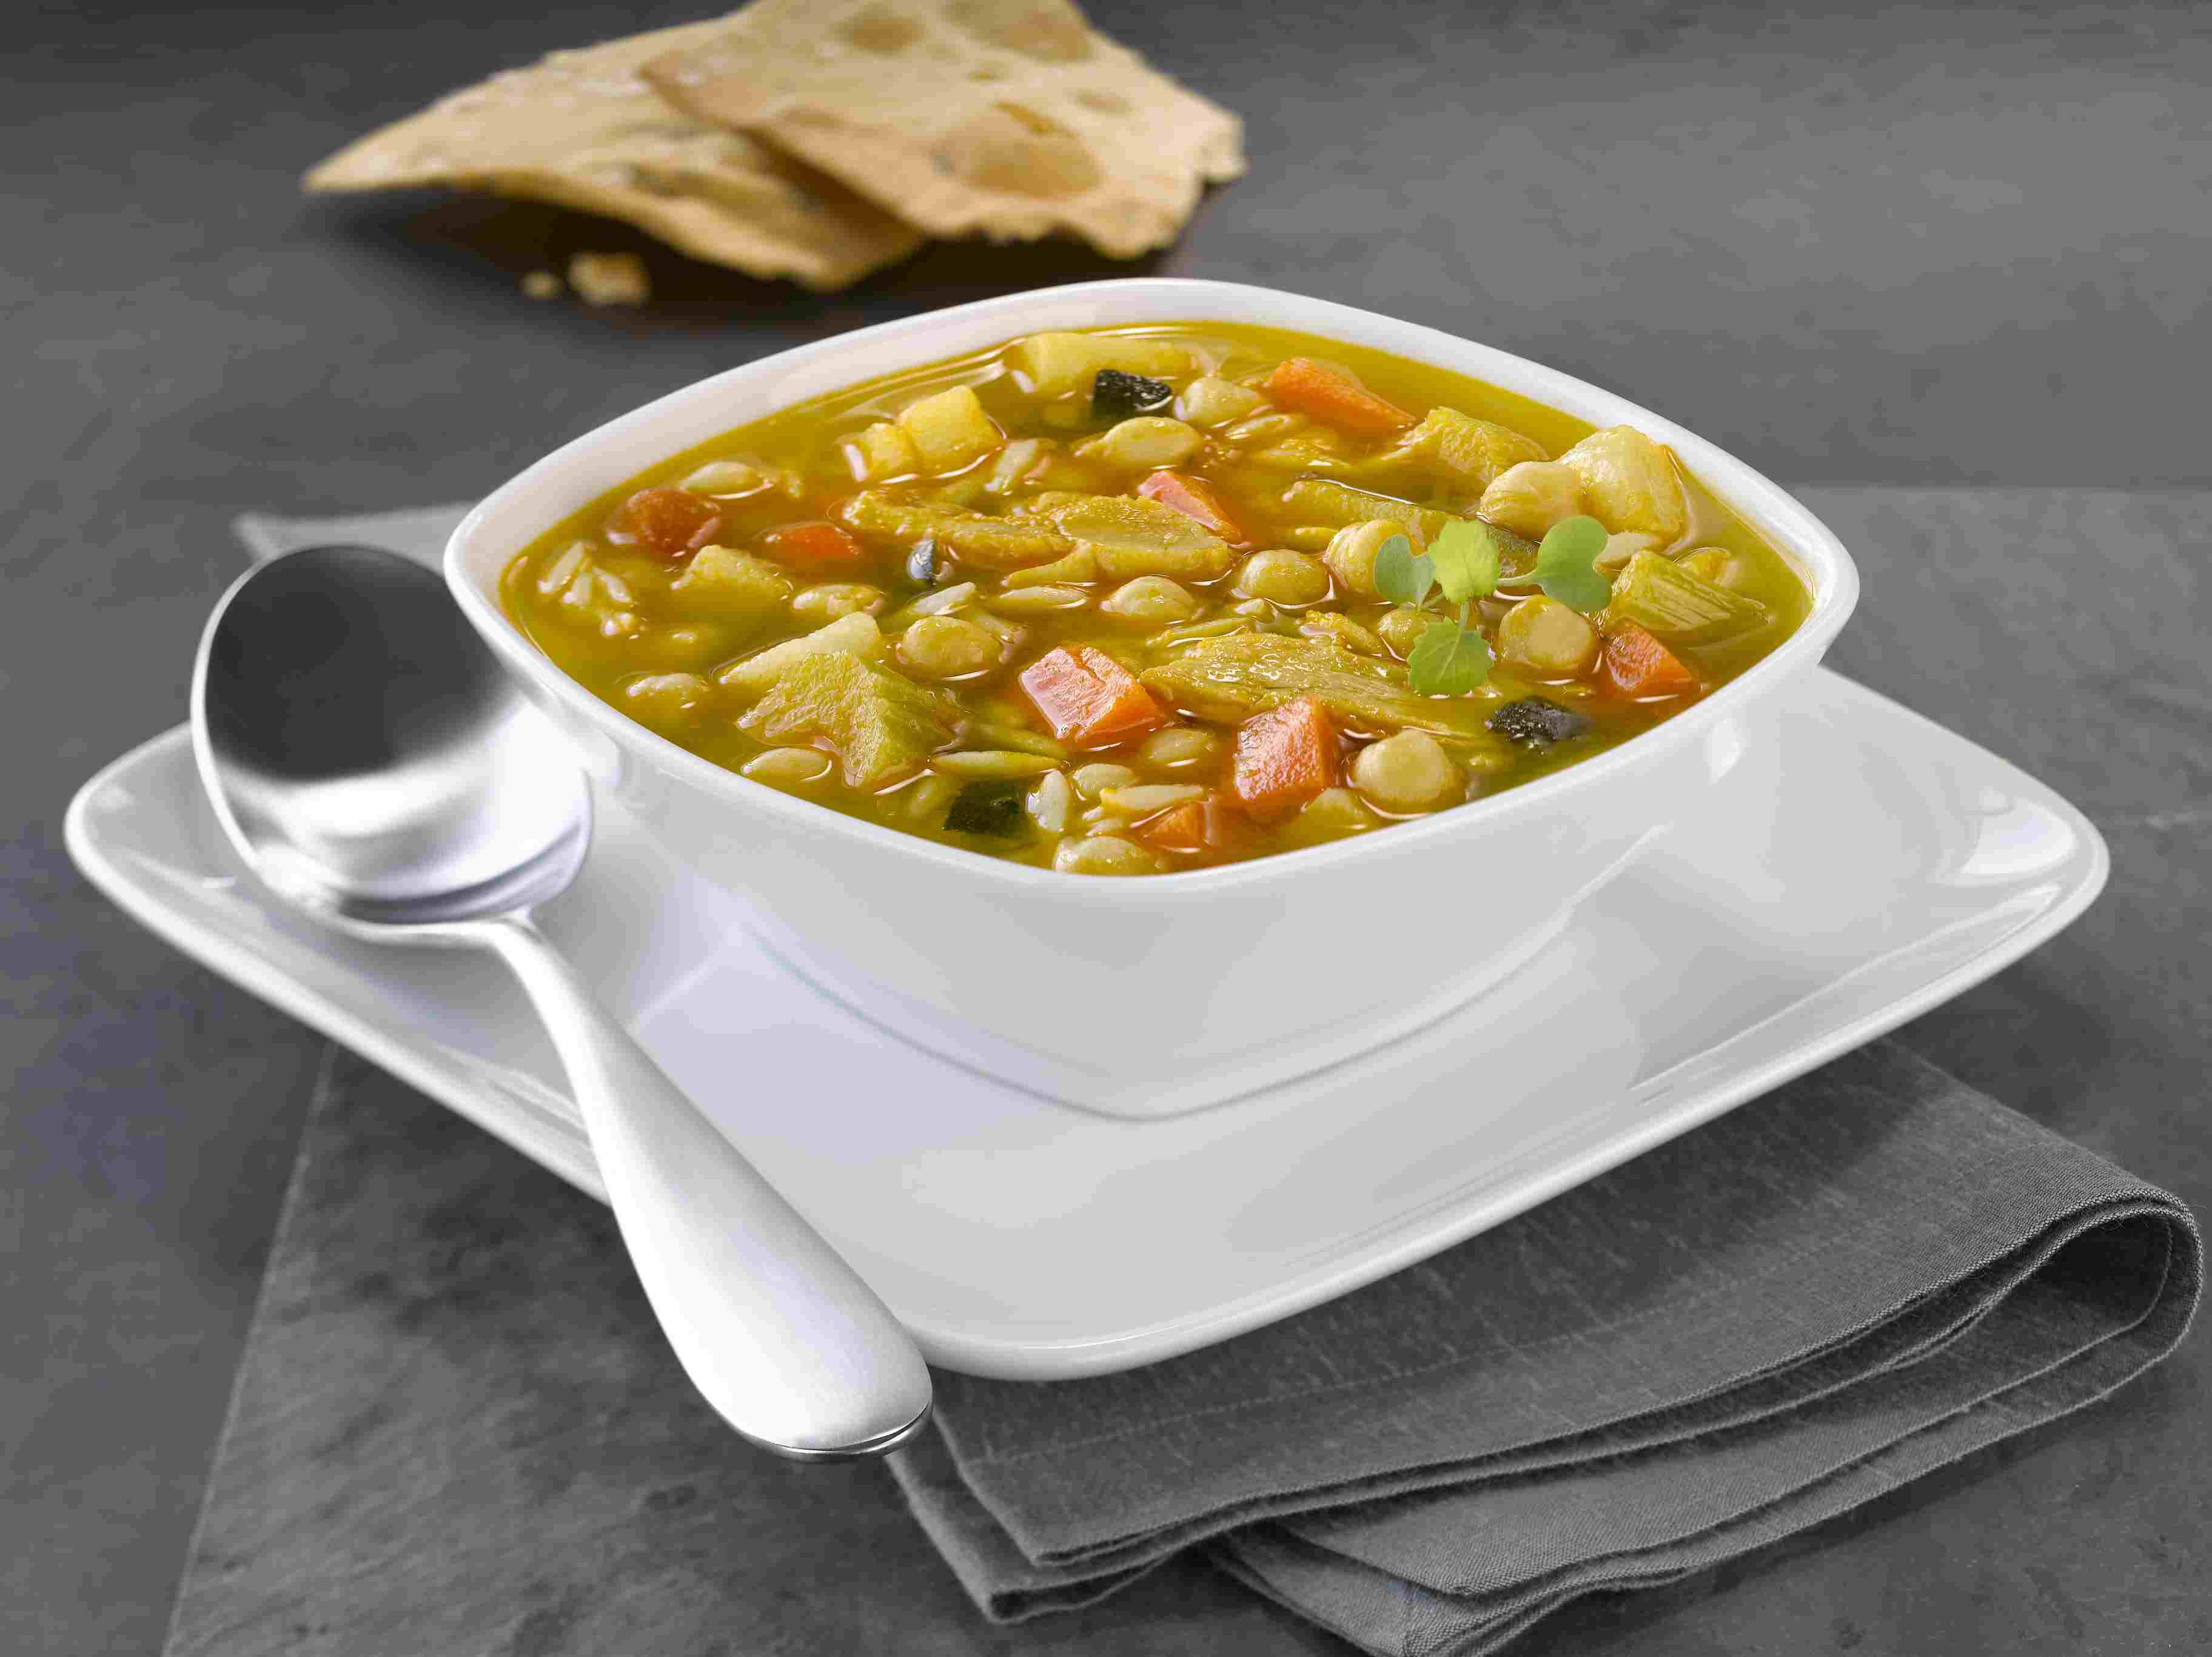 Soup with vegetables can be high in fiber.